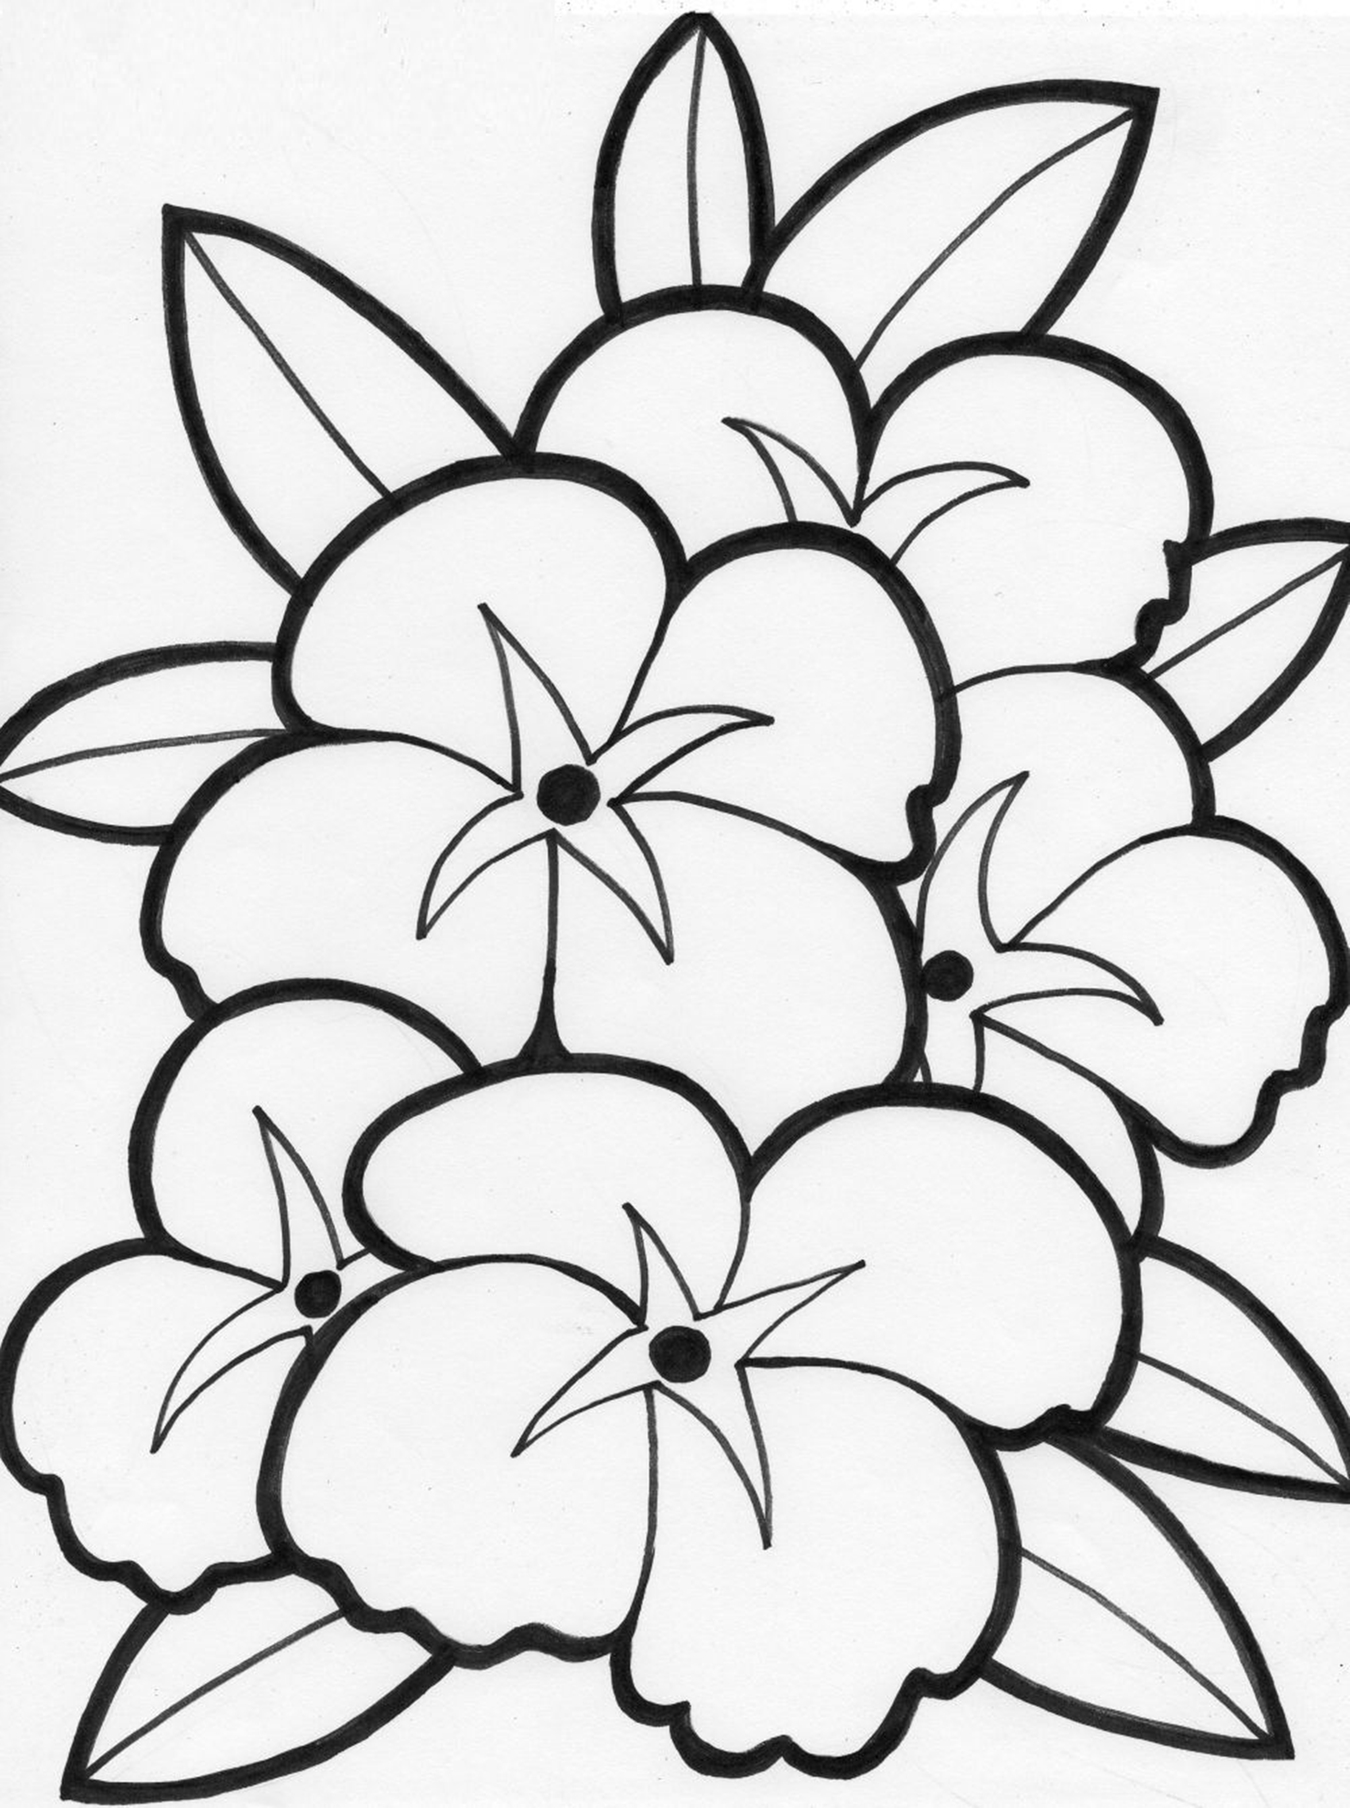 childrens coloring pages flowers free printable flower coloring pages for kids best flowers pages childrens coloring